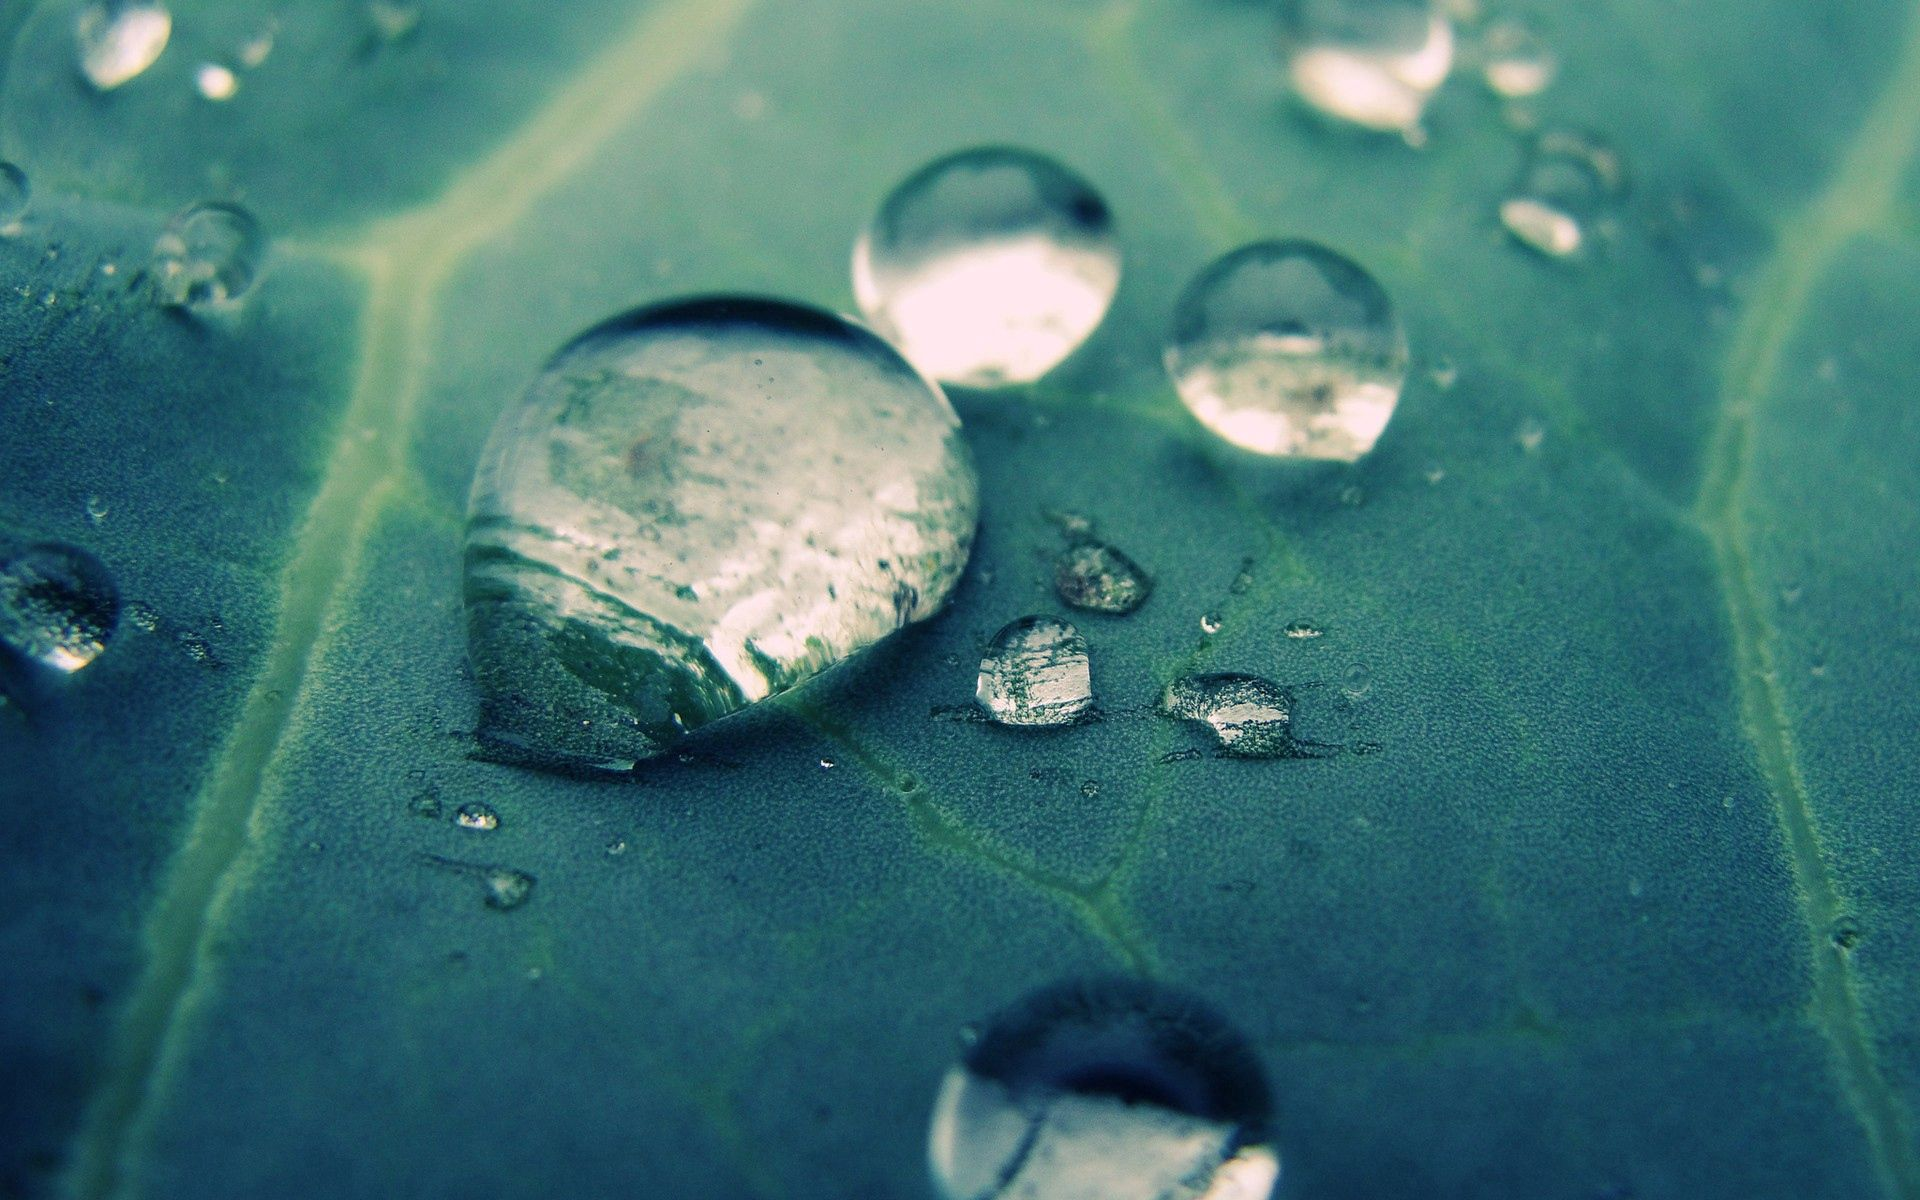 155006 download wallpaper Macro, Drops, Surface, Veins screensavers and pictures for free